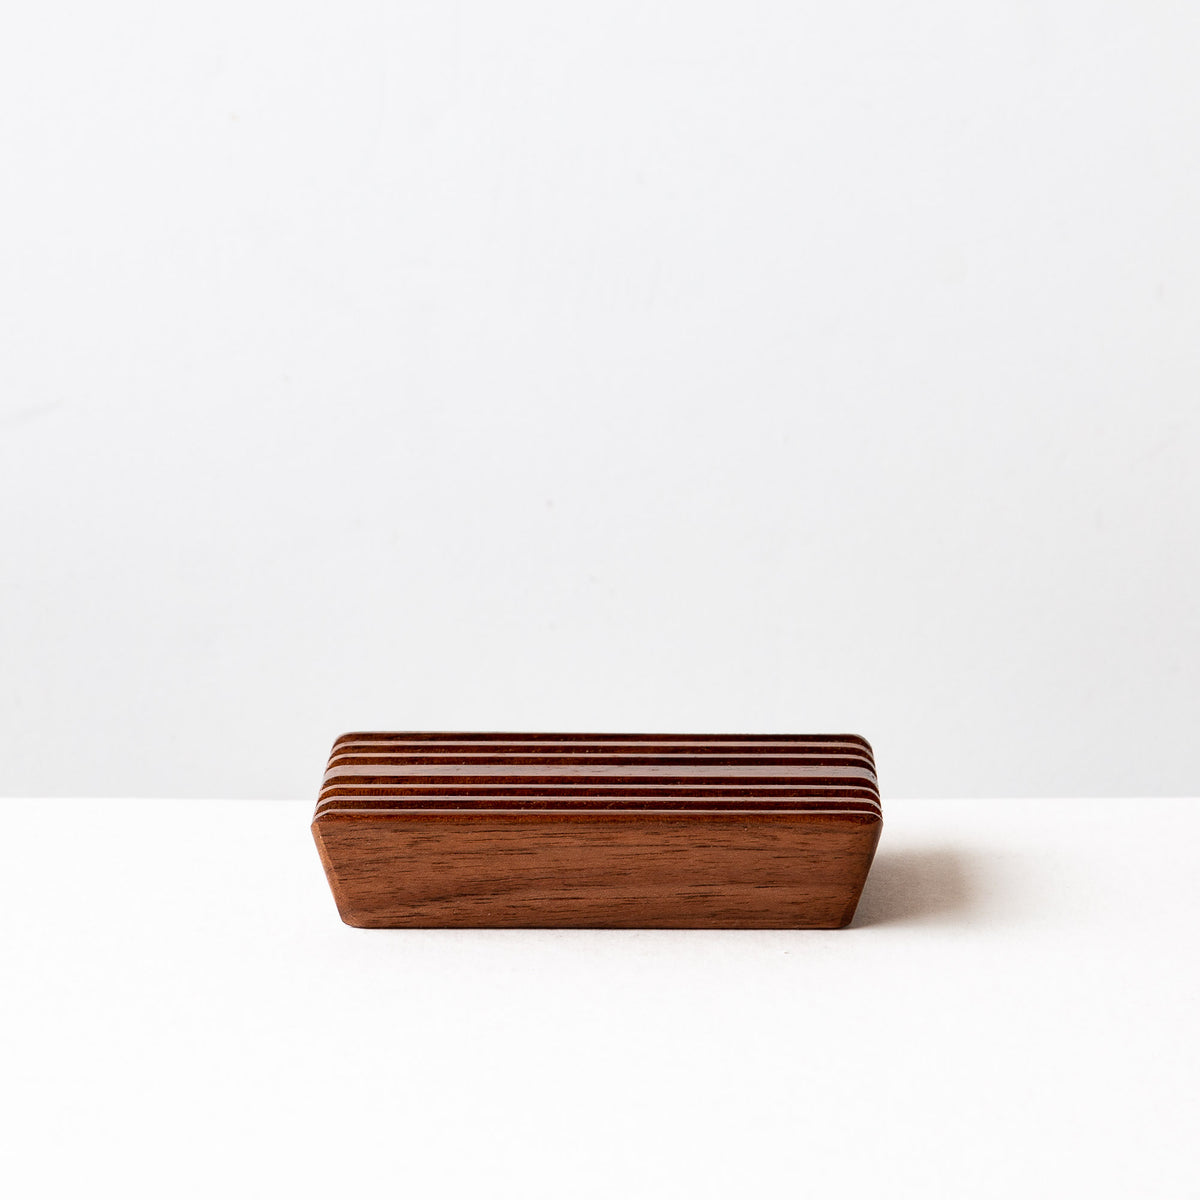 Side View - Black Walnut Soap Dish - Sold by Chic & Basta